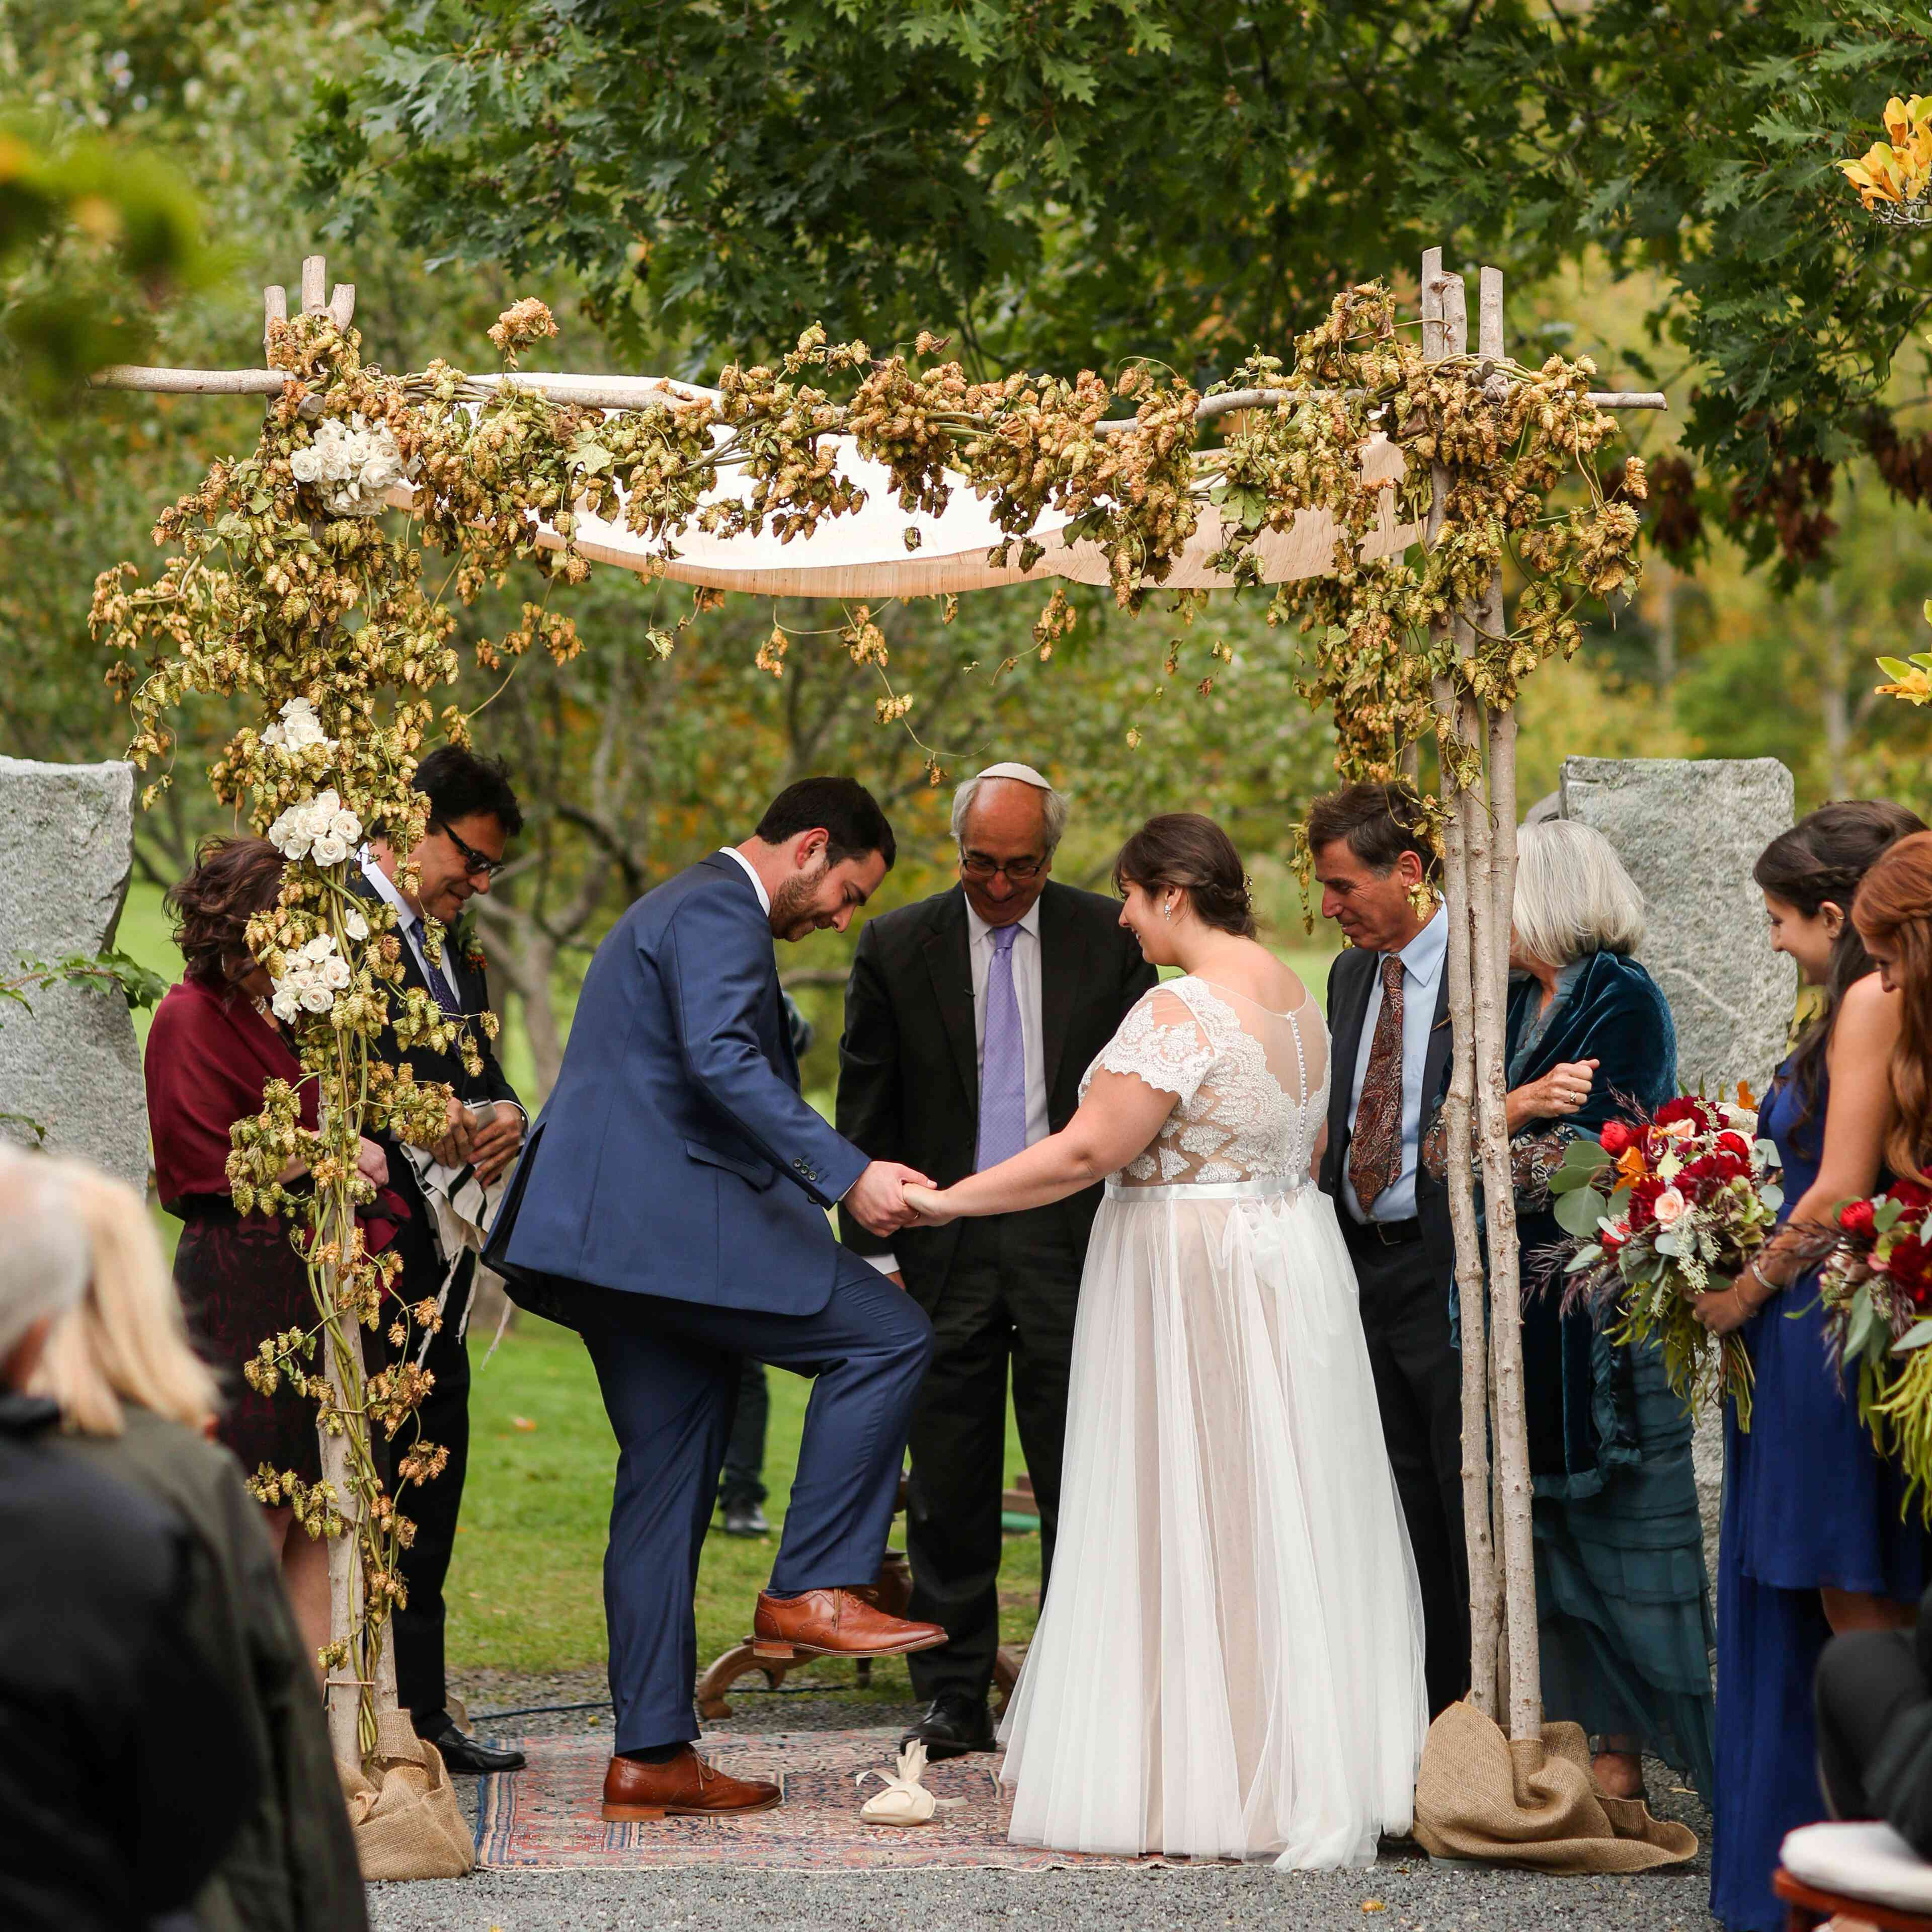 Jewish Wedding Traditions.10 Jewish Wedding Traditions Rituals You Need To Know